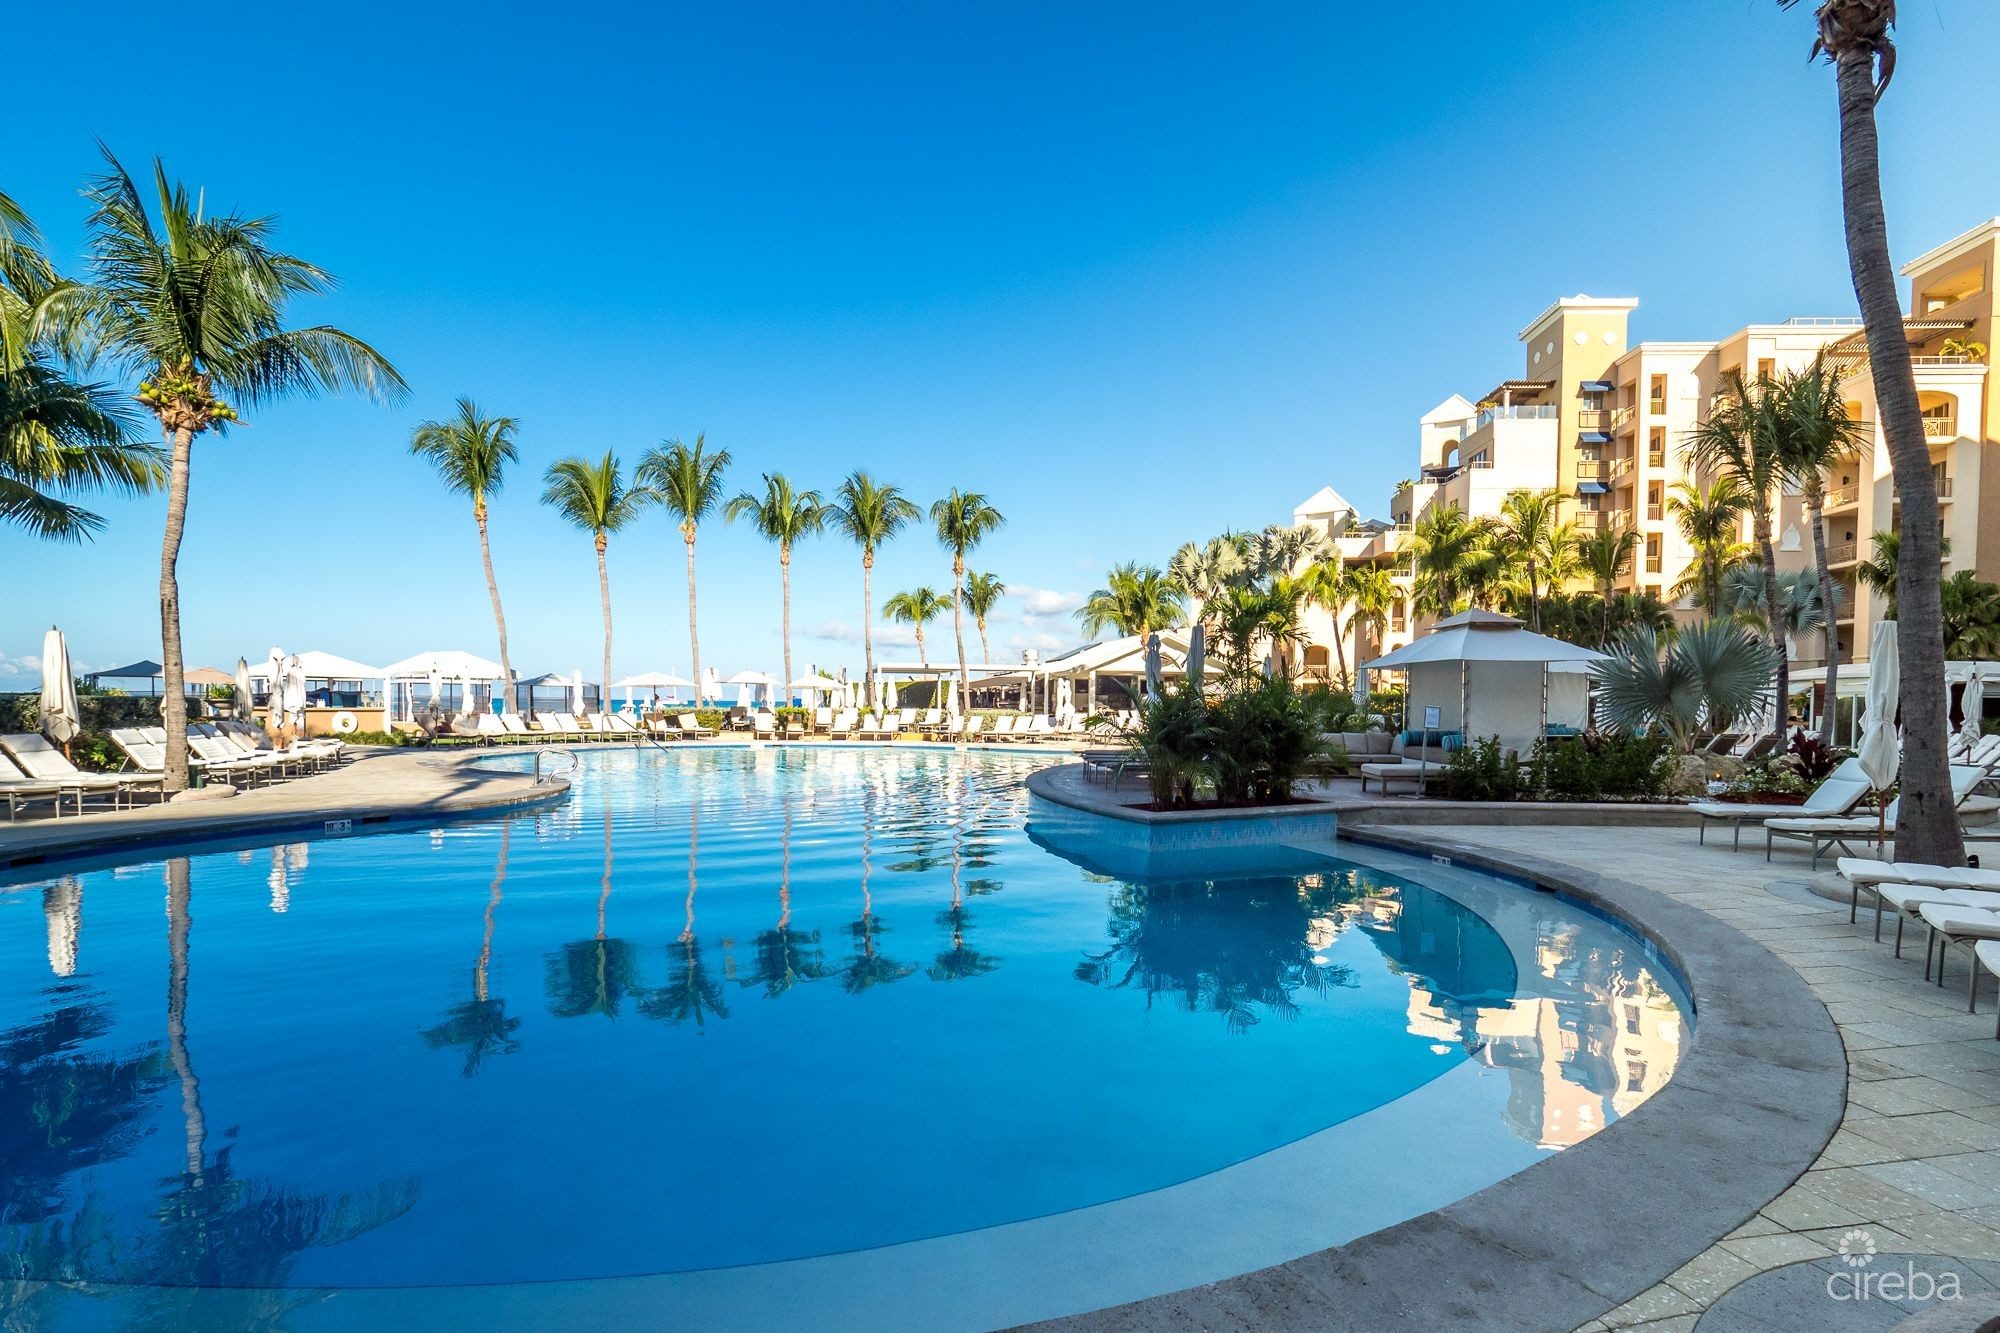 RITZ-CARLTON PRIVATE RESIDENCE #101, SOUTH TOWER, GRAND CAYMAN